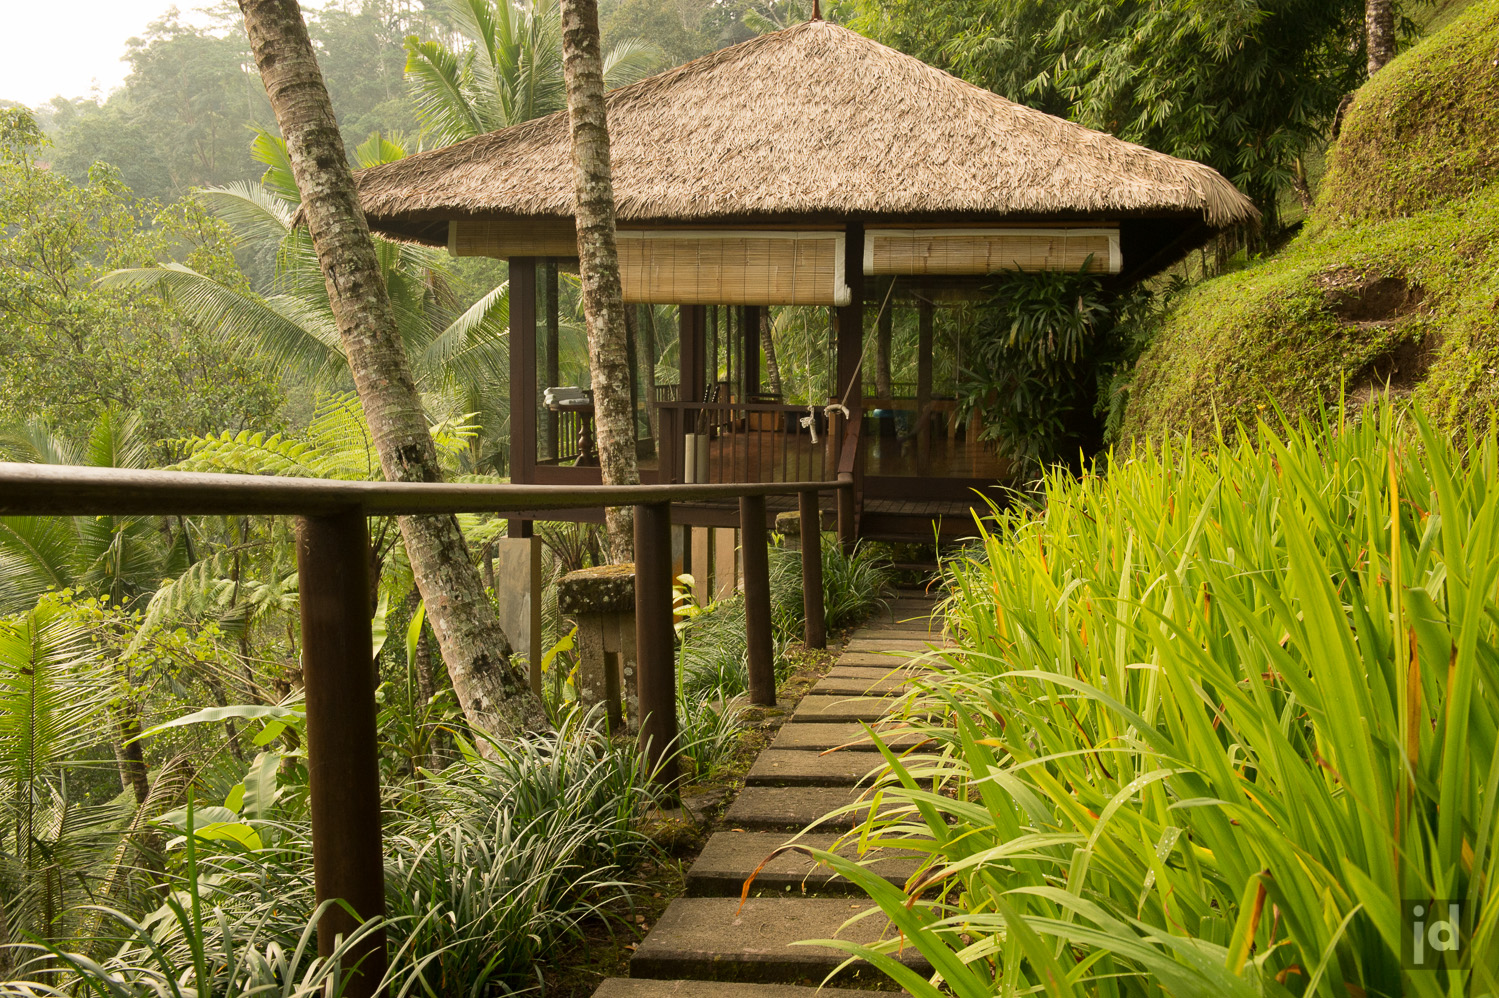 Bali_Indonesia_Photography_Jason_Davis_Images_036.jpg